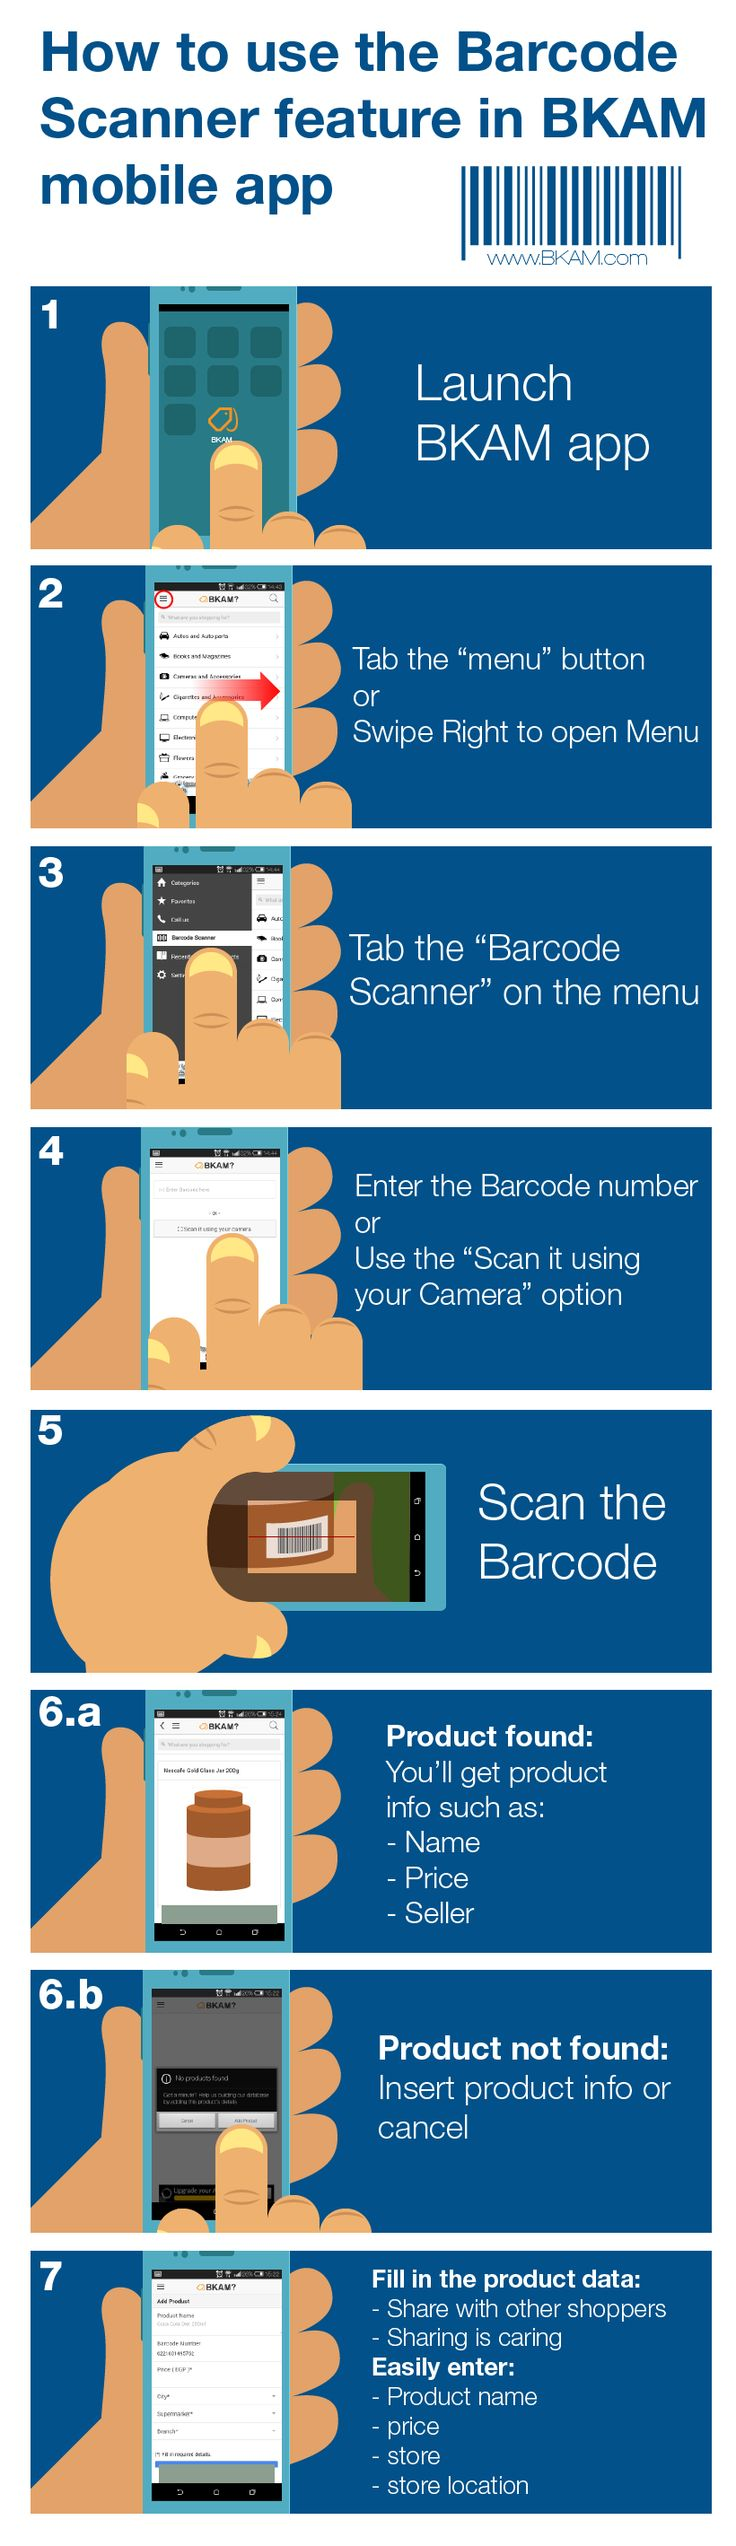 How to use #Bkam #barcode scanner in #bkam #mobile app to compare prices of #grocery products